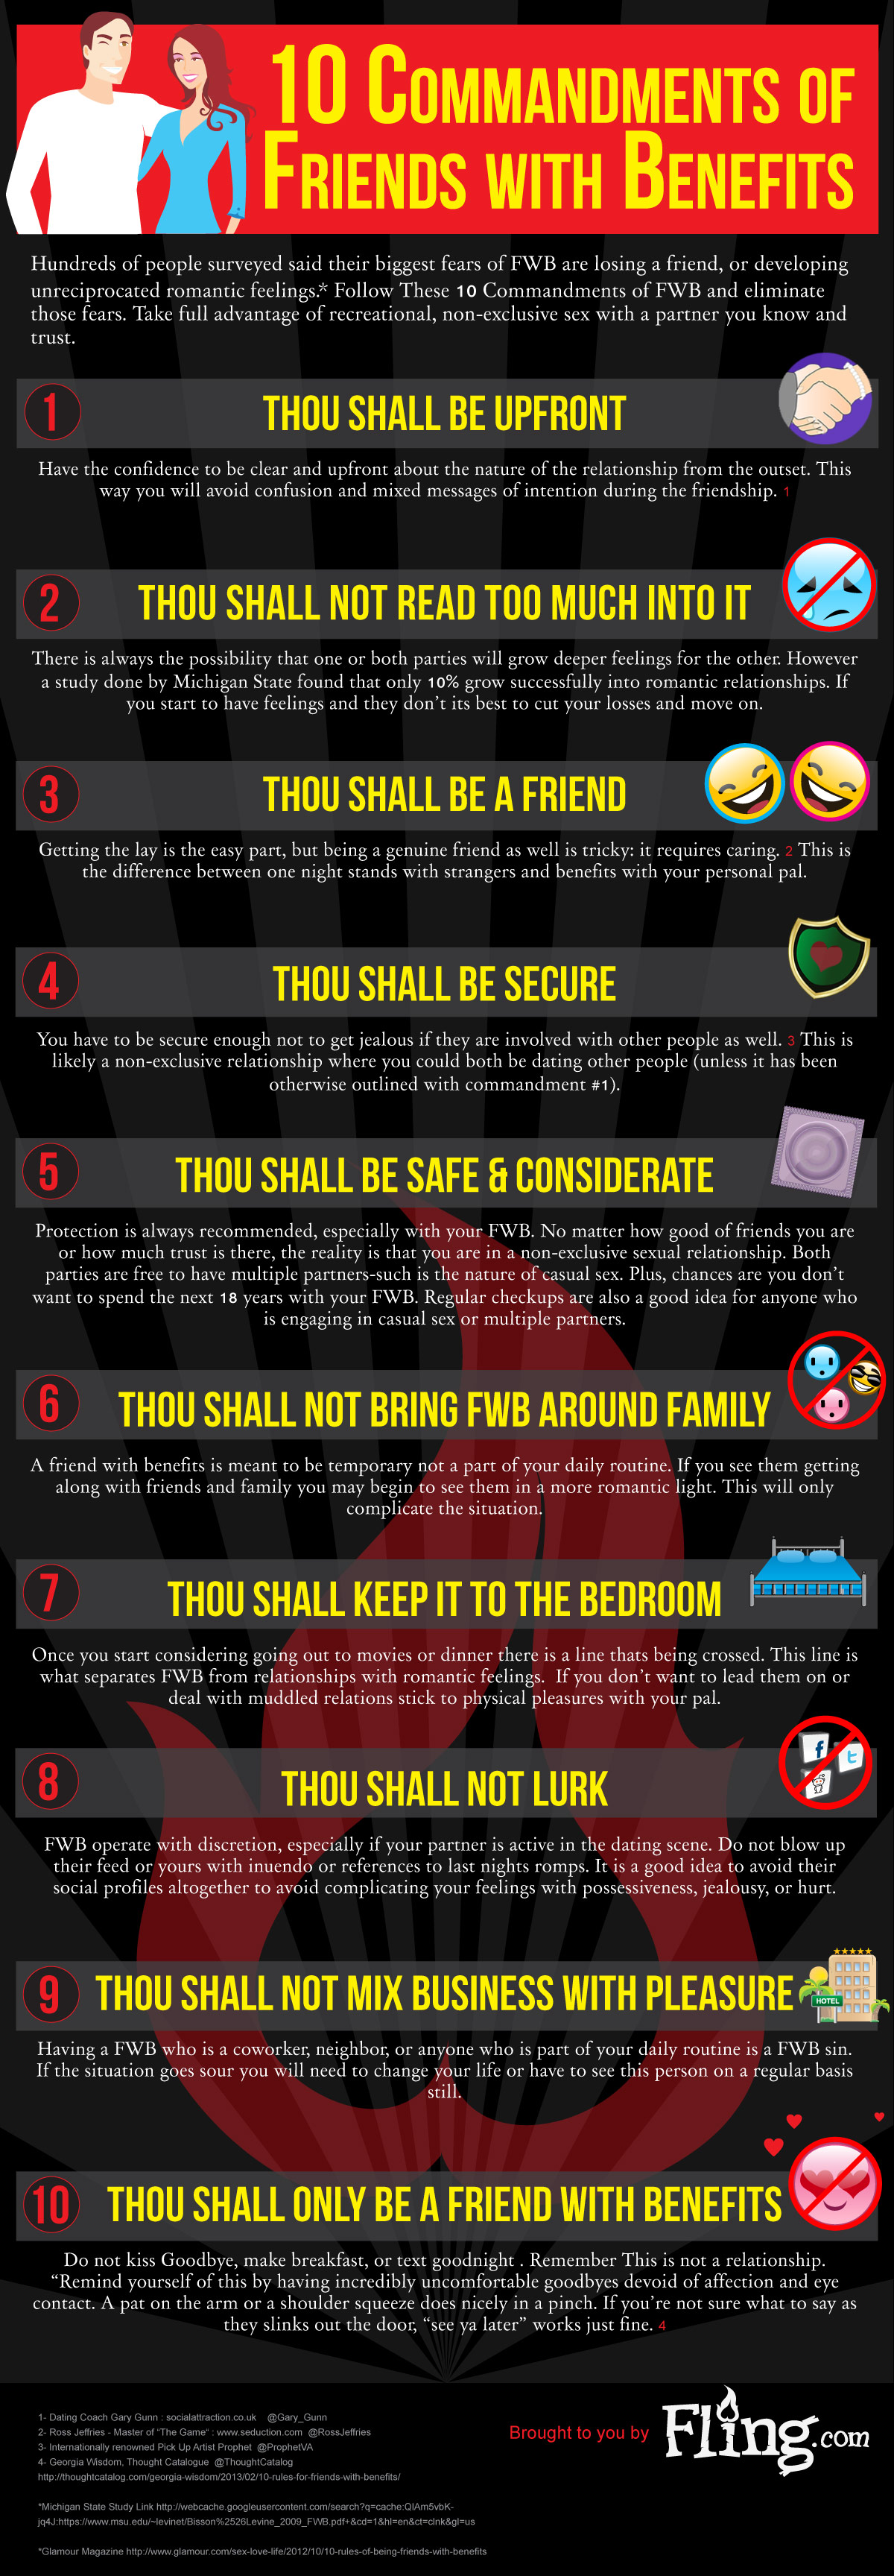 Commandments of friends with benefits